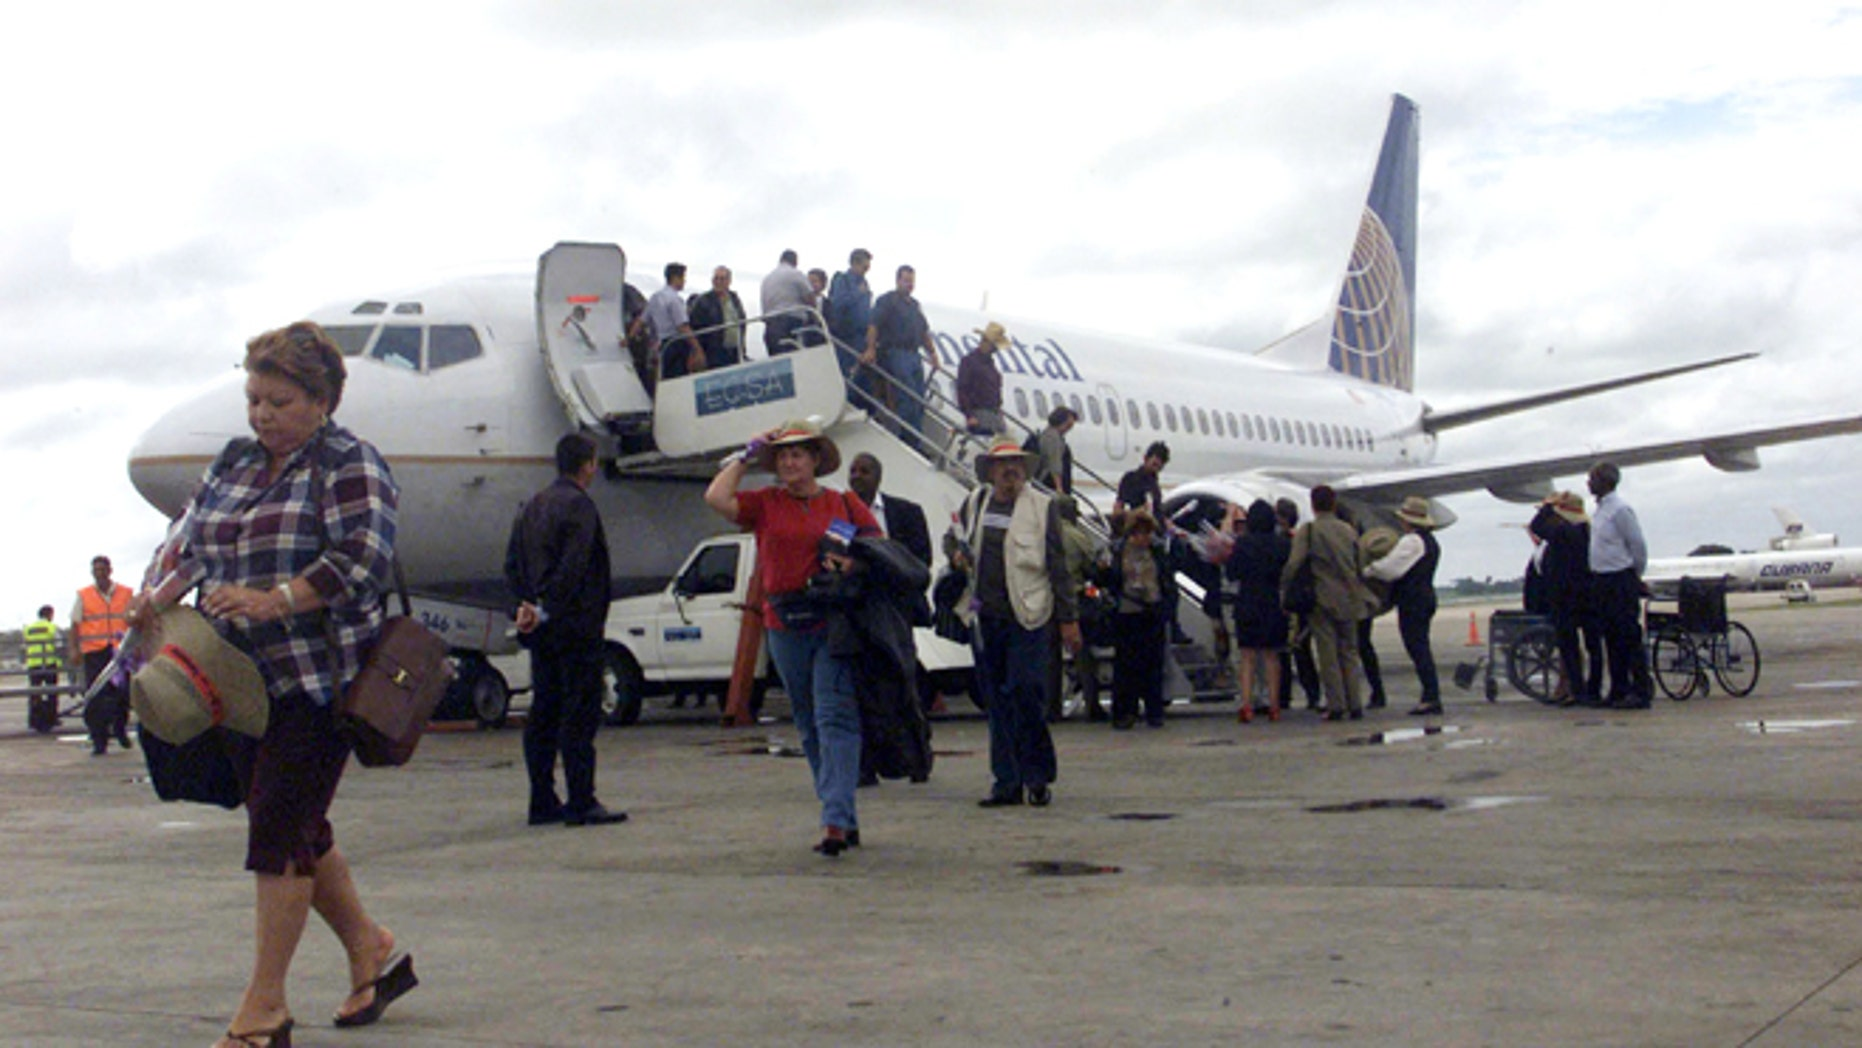 Passengers walk away from a Continental Airlines Boeing-737 at Havana's Jose Marti International Airport. (Photo by Jorge Rey/Getty Images)